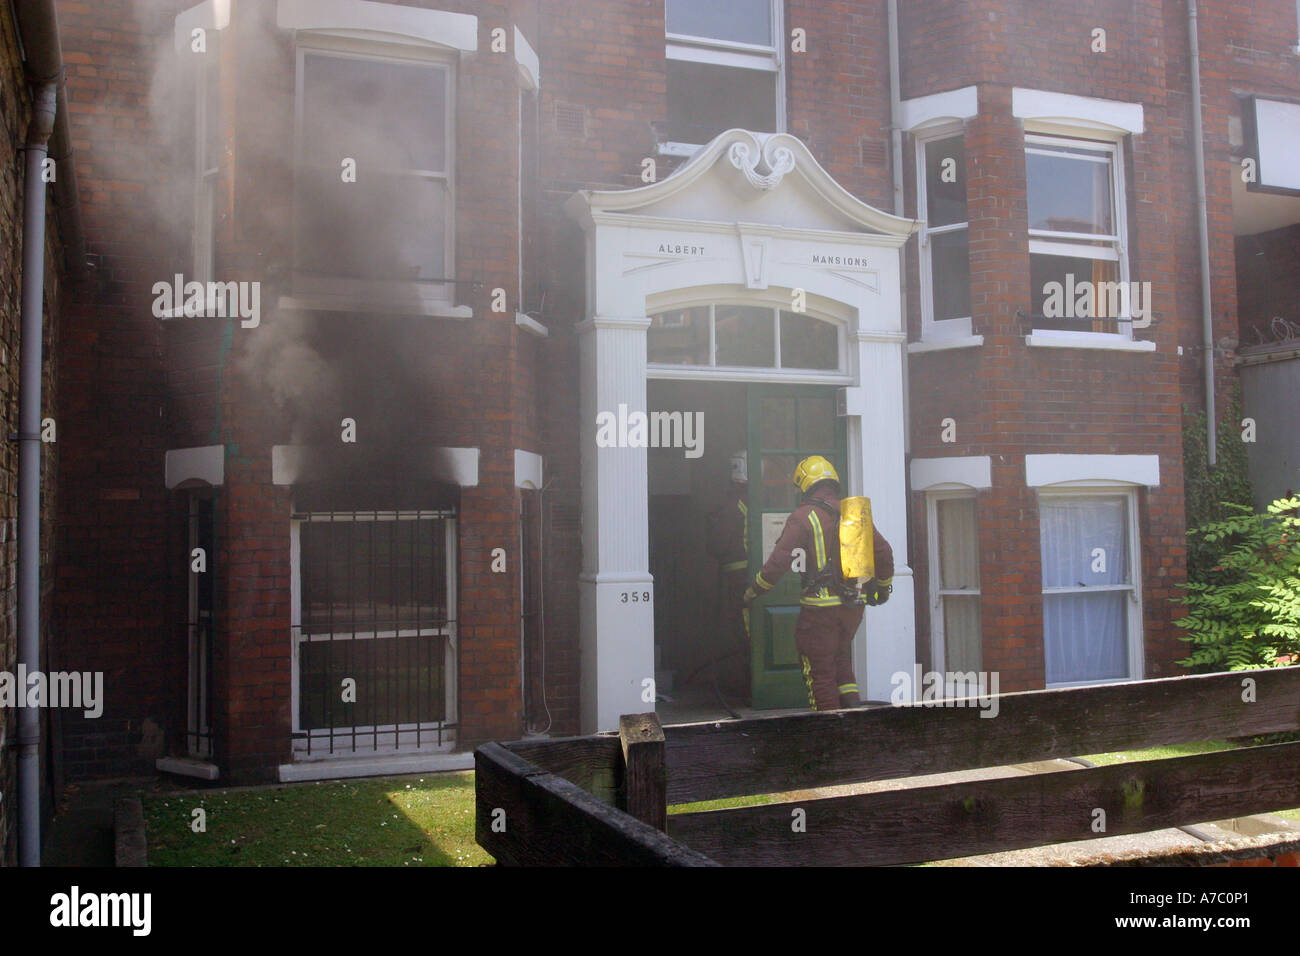 Firefighters putting out fire in basement council flat - Stock Image